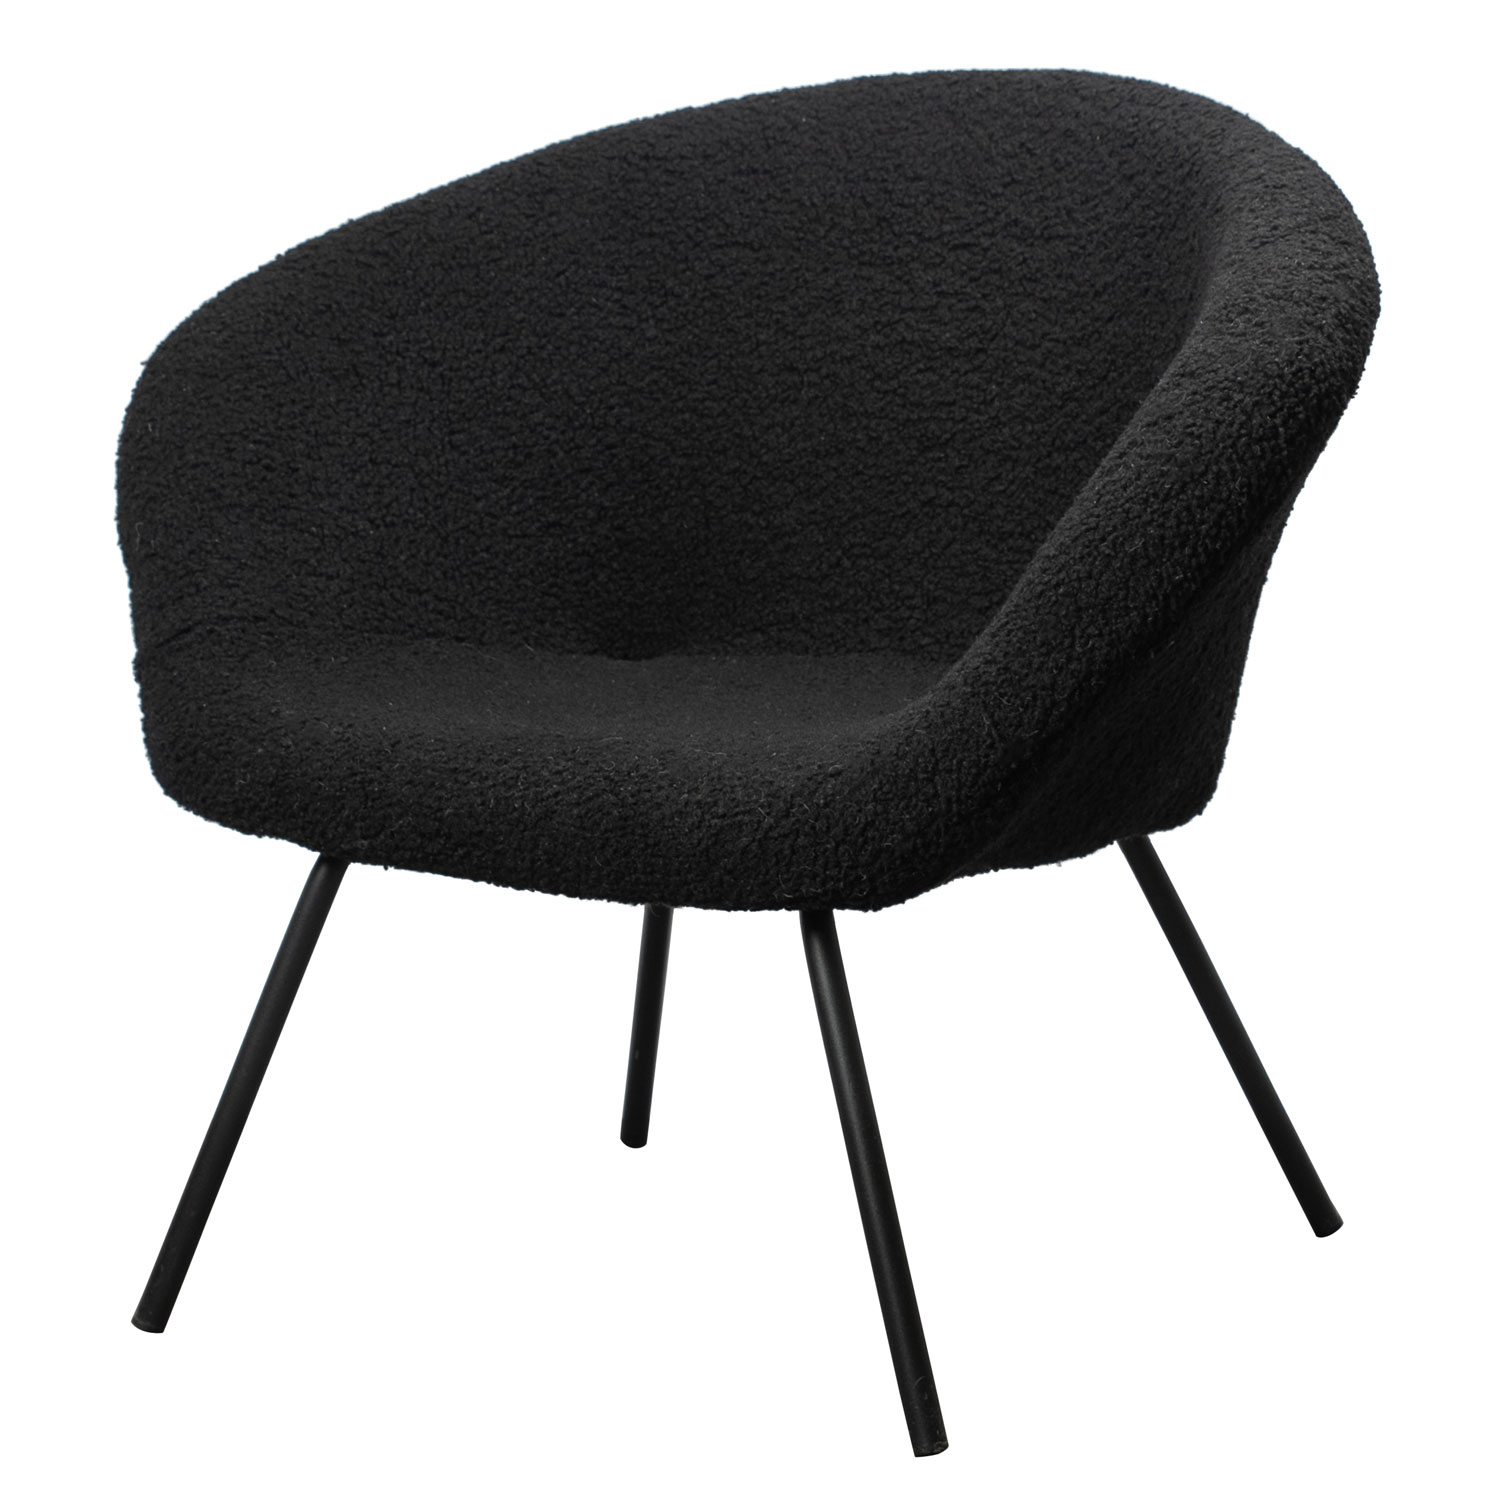 Theodore Lounge Sessel Byon Royaldesign De